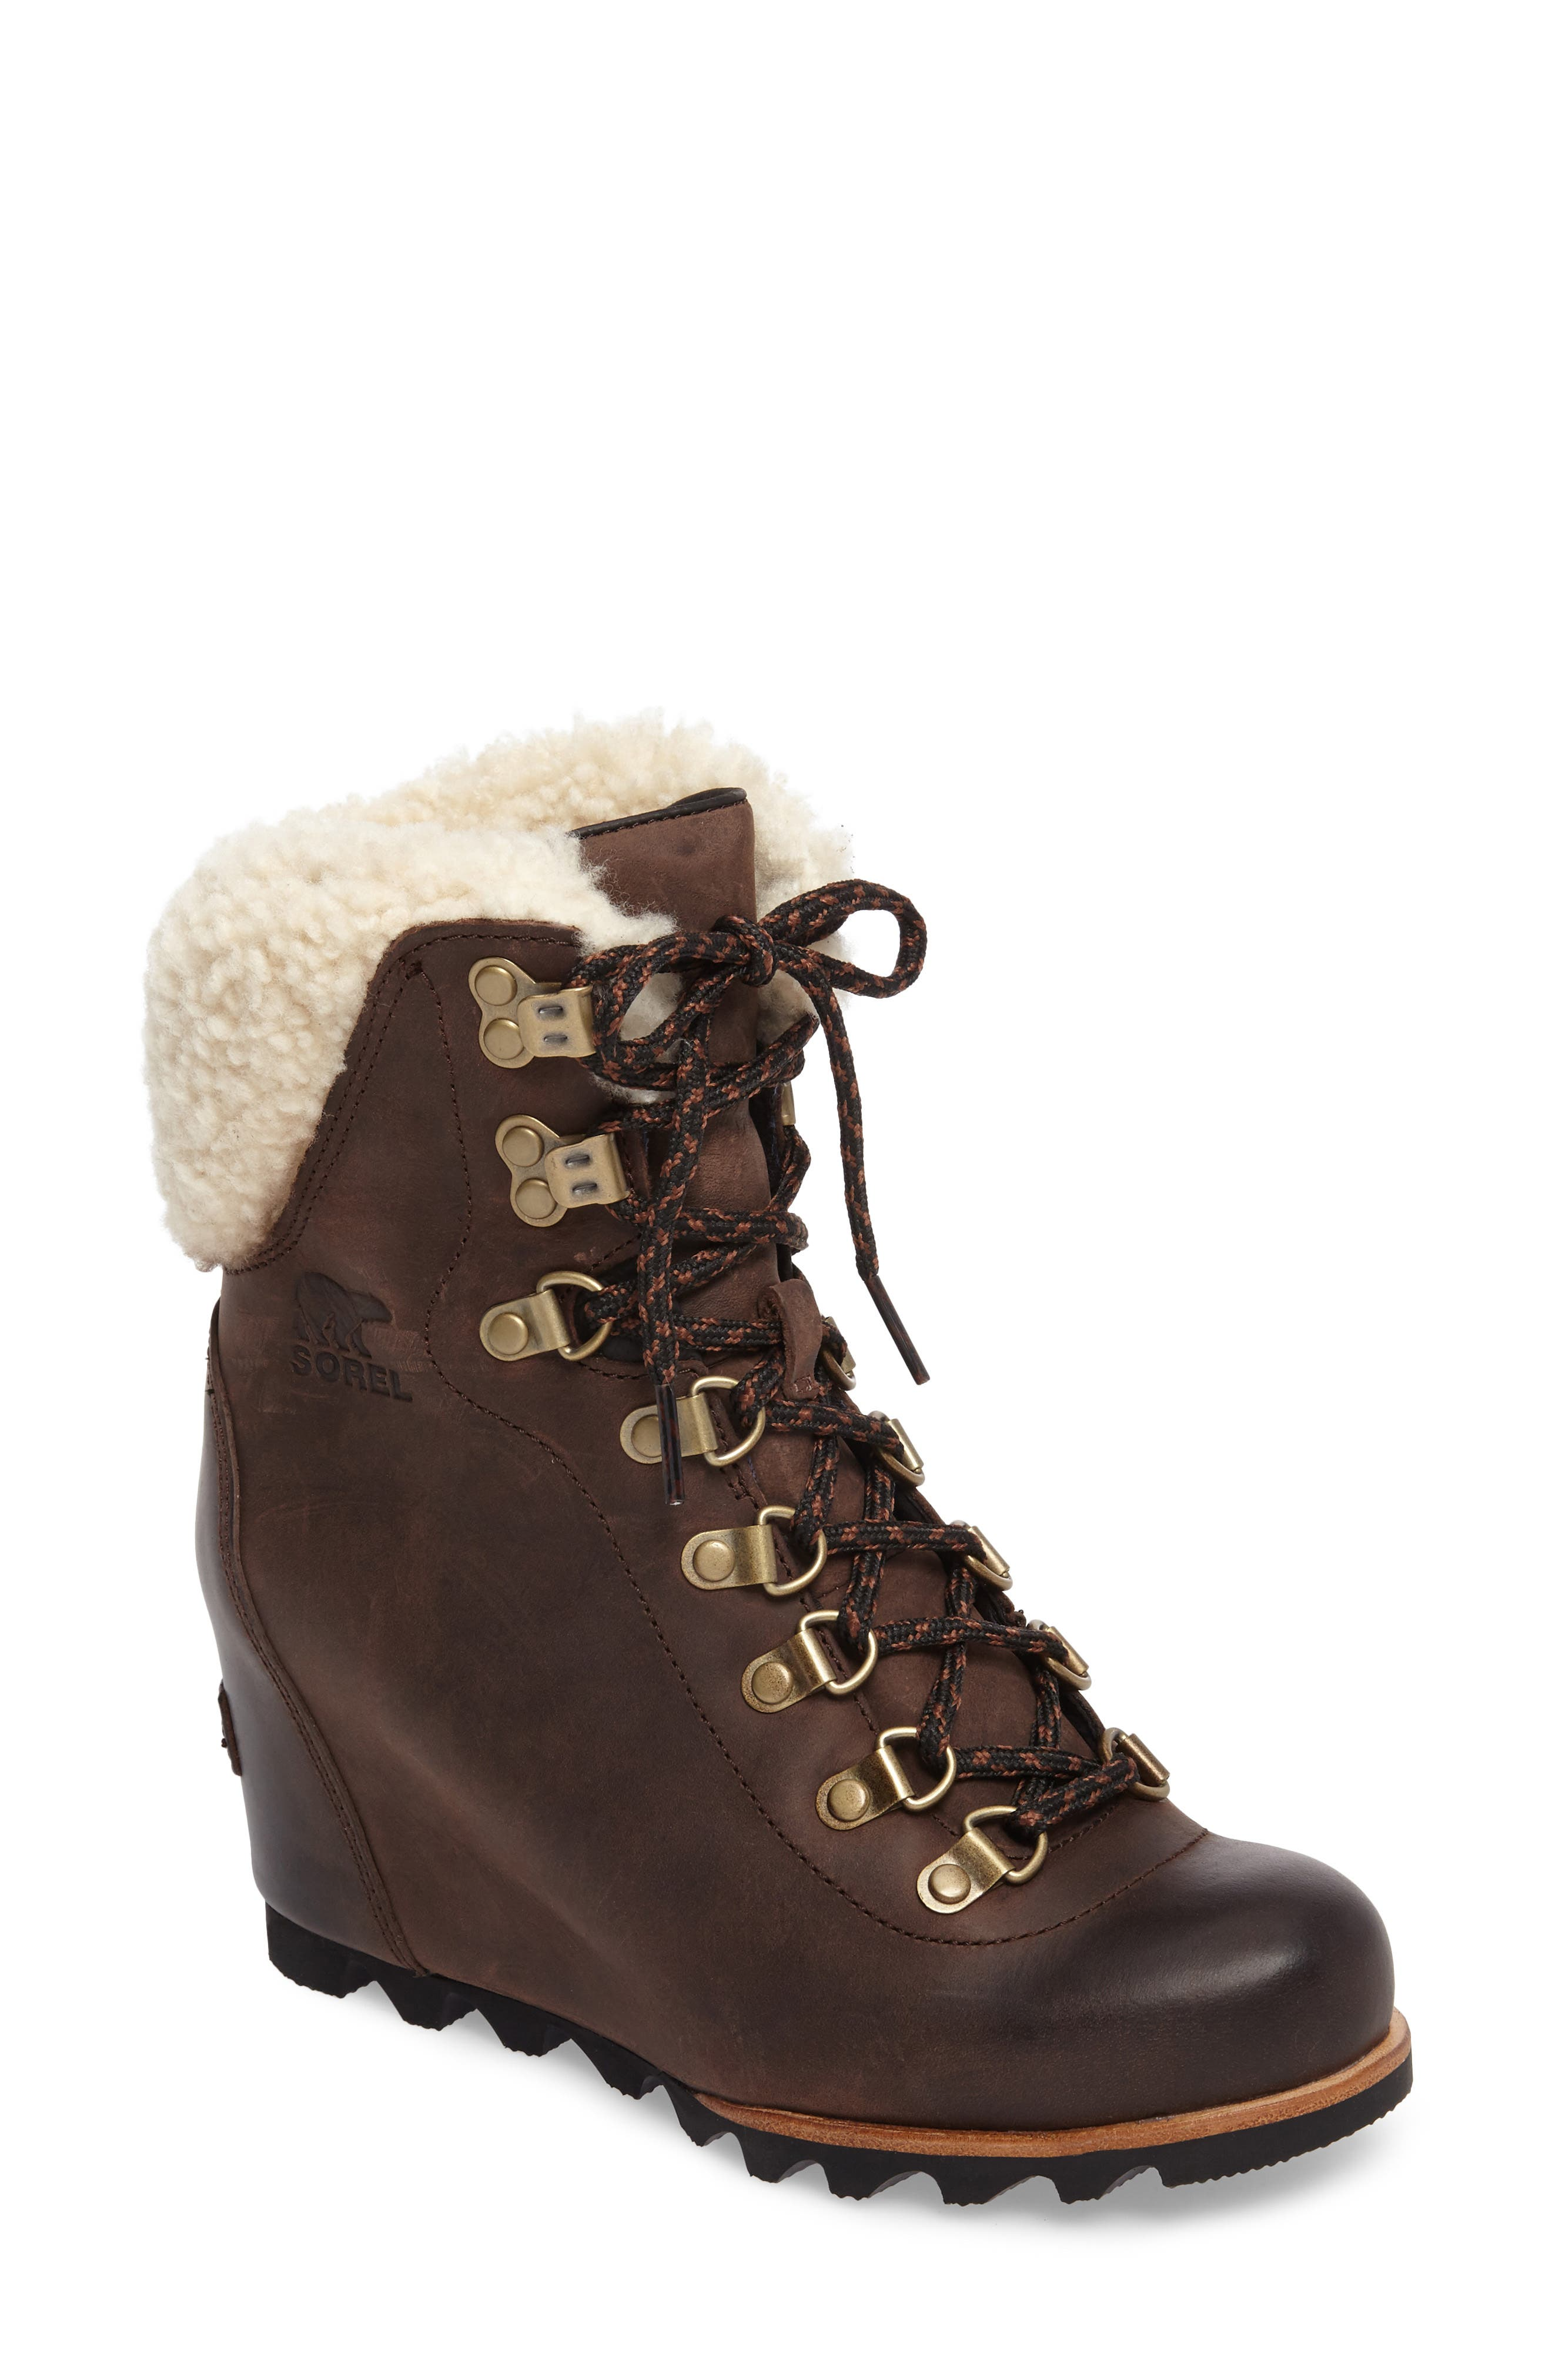 Conquest Genuine Shearling Cuff Waterproof Boot,                             Main thumbnail 1, color,                             200